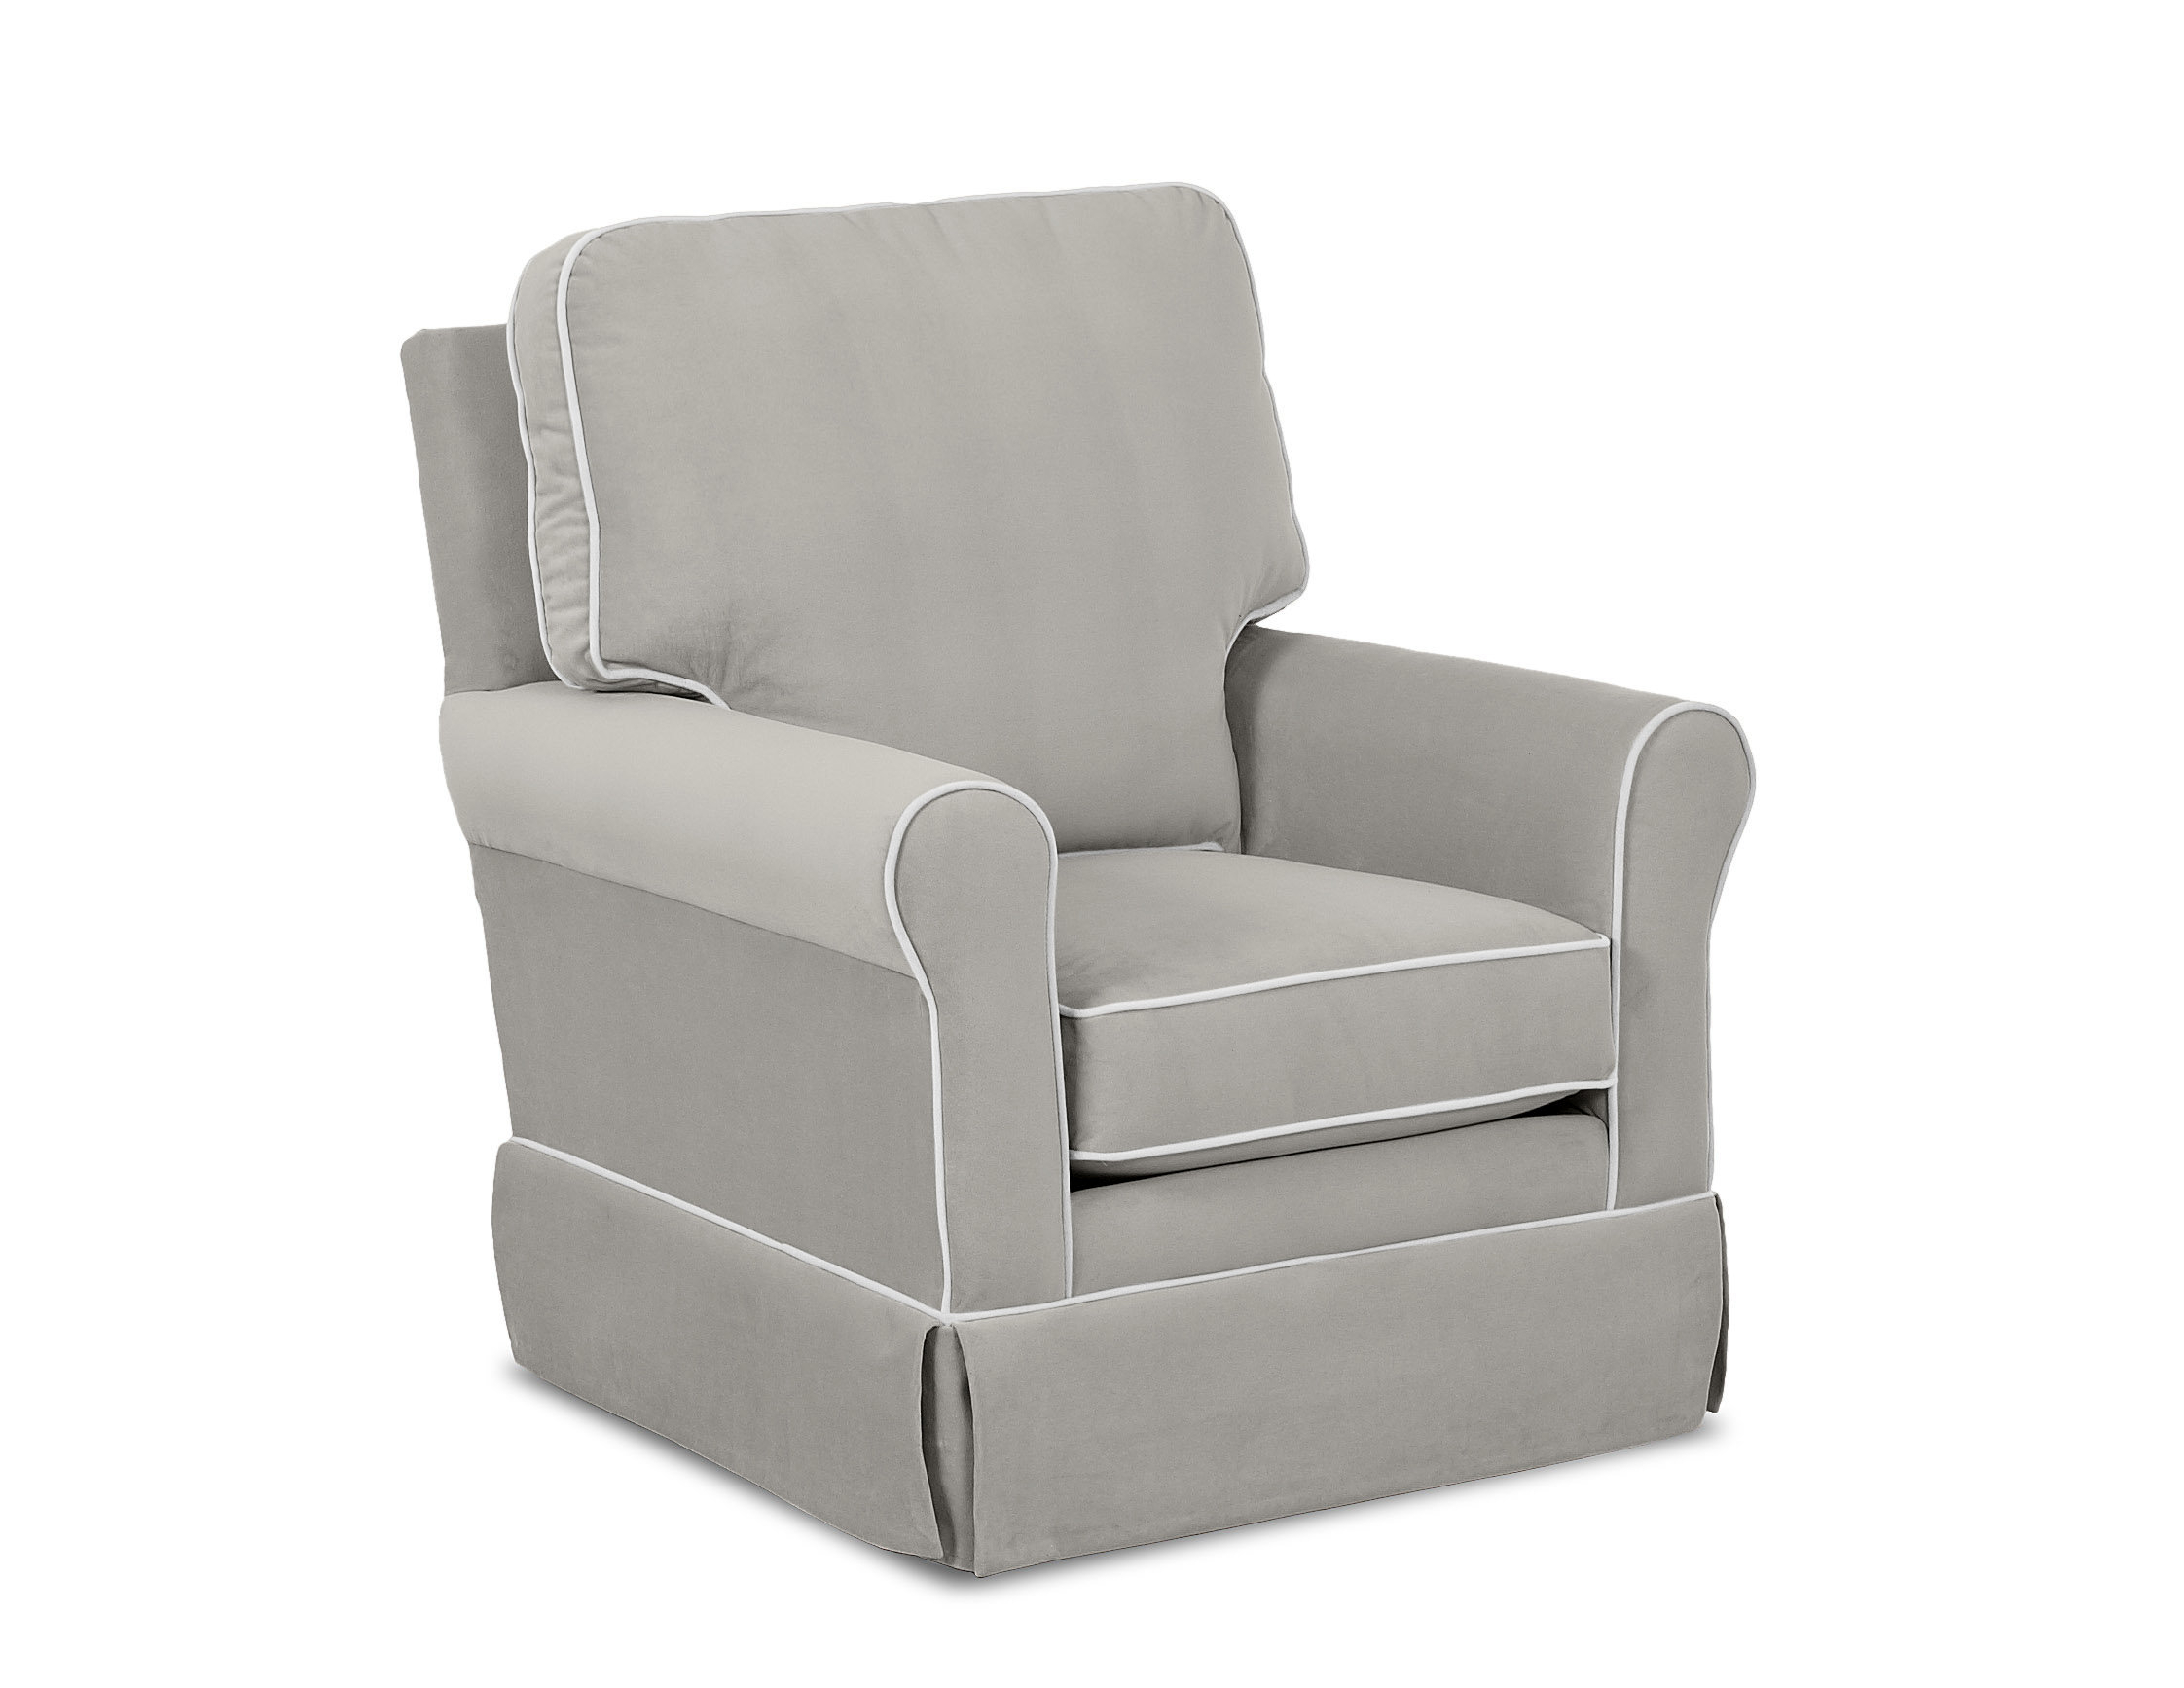 25 Ideas Of Katrina Grey Swivel Glider Chairs